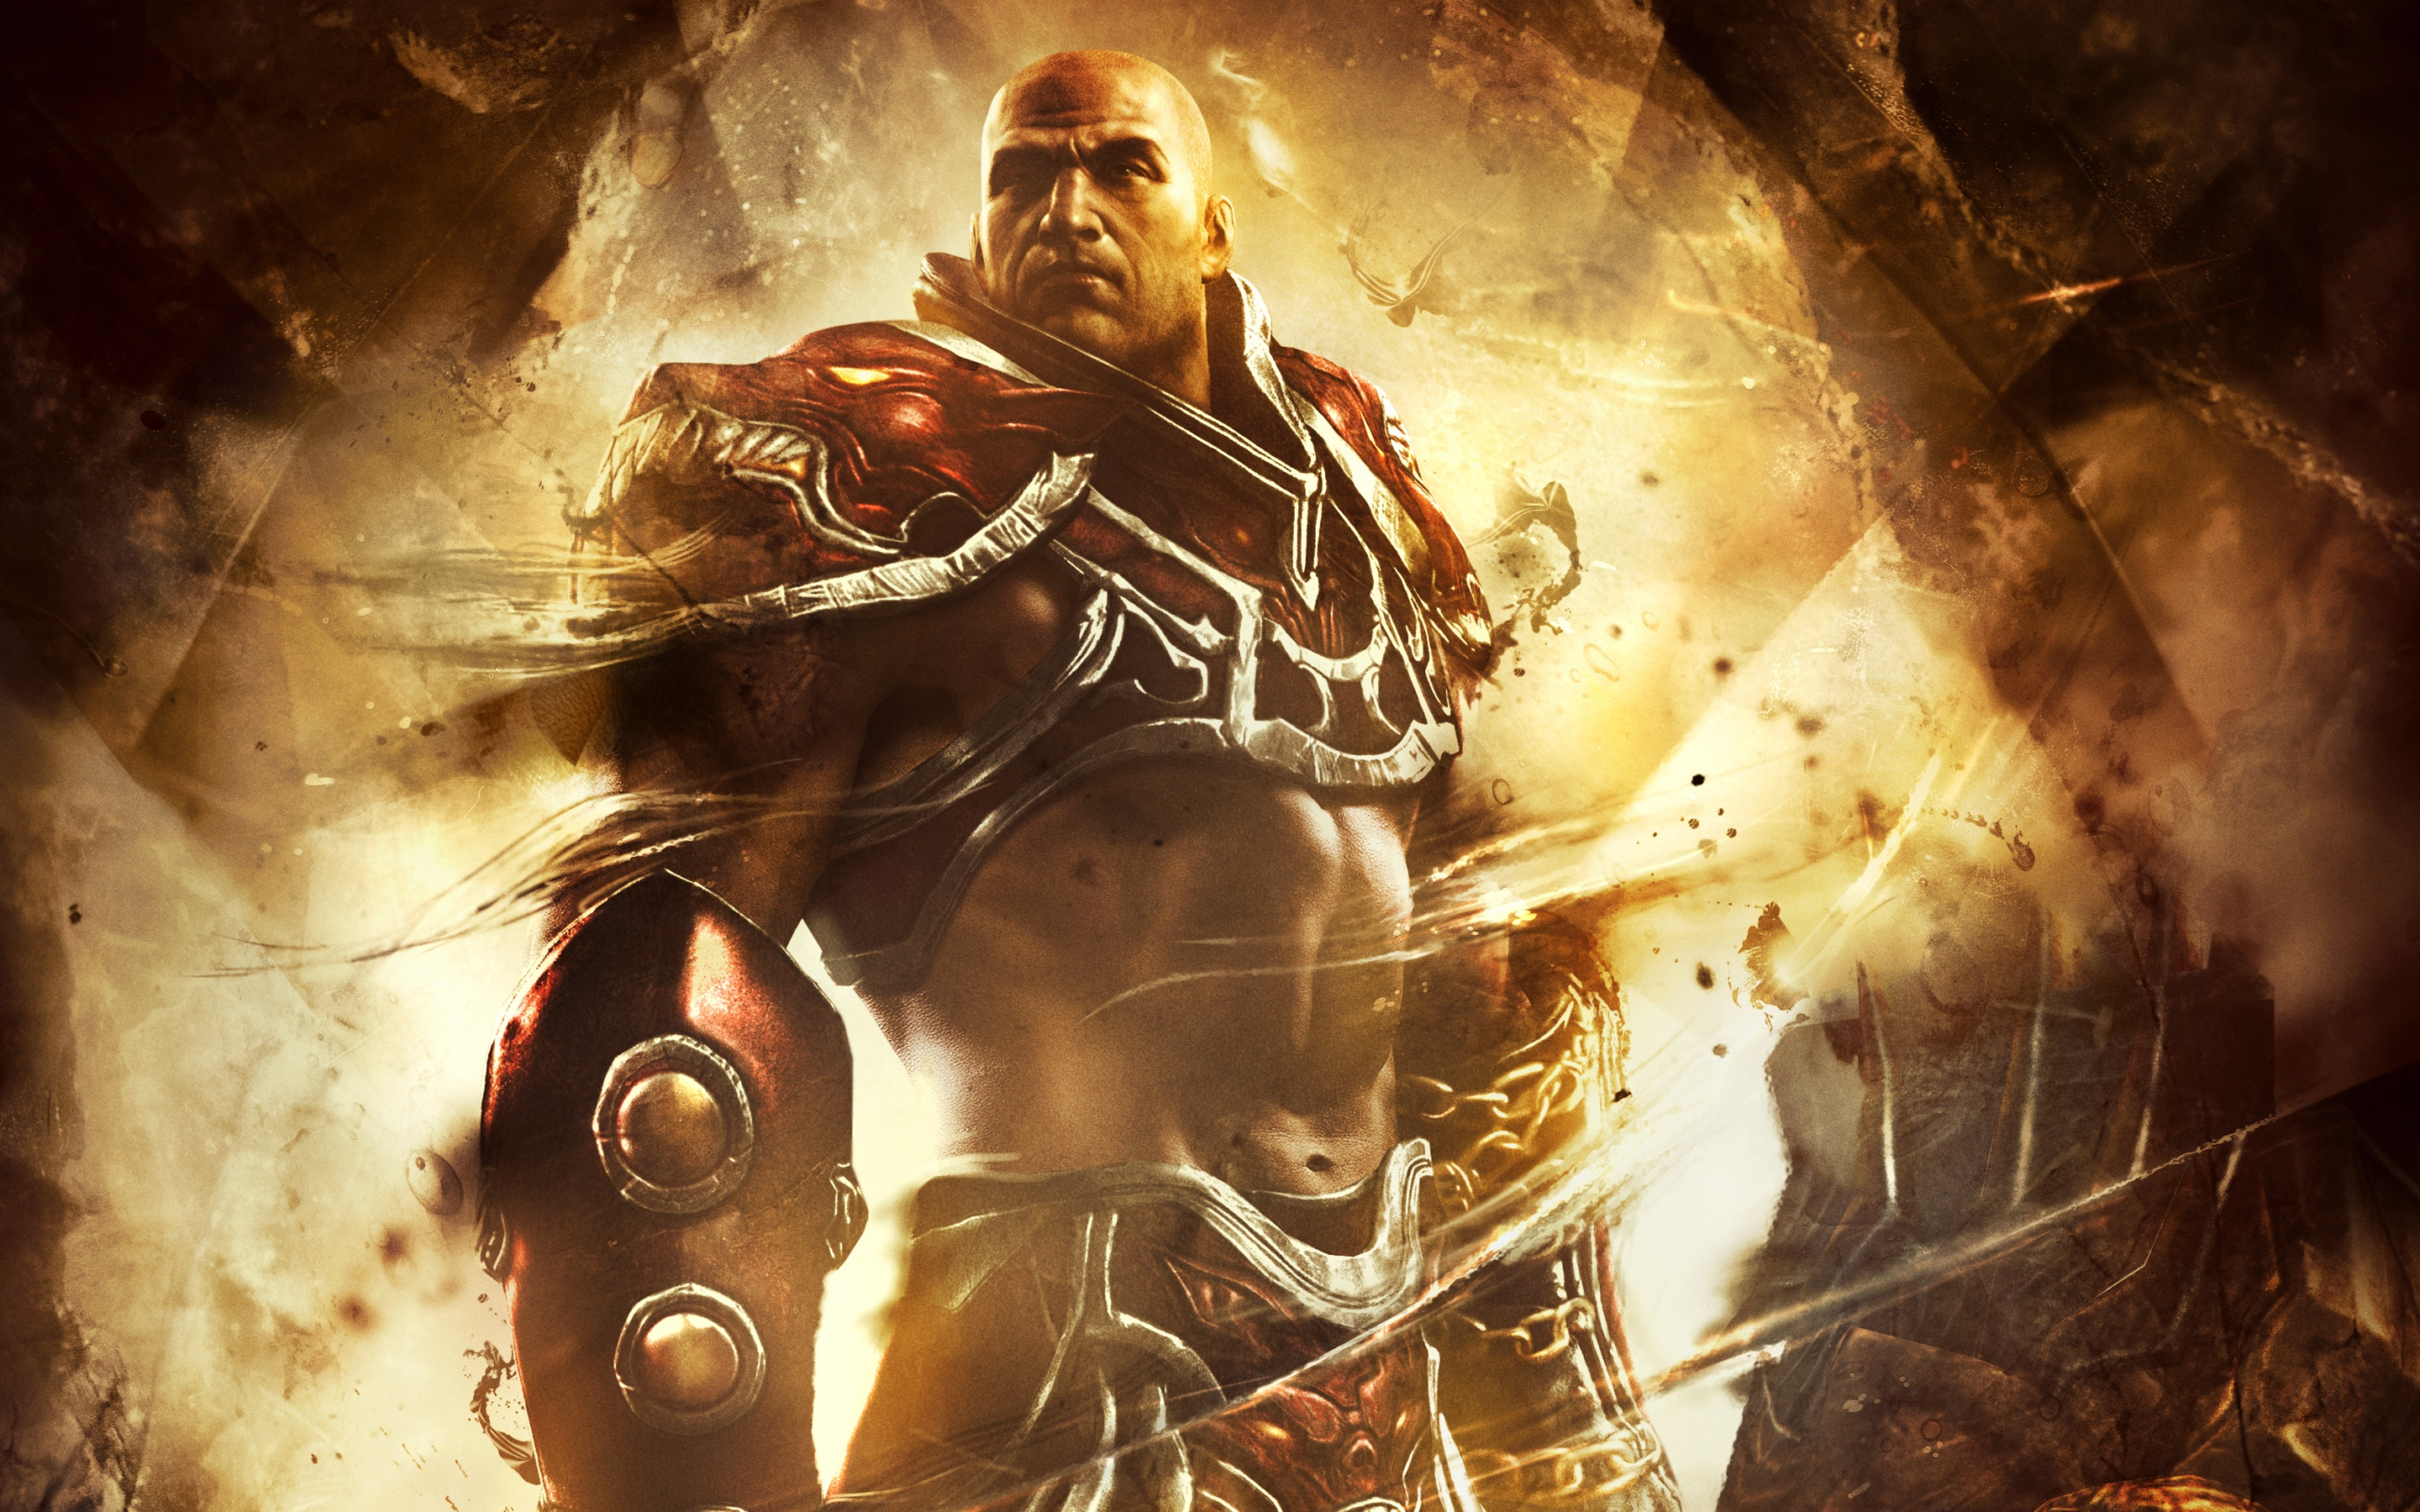 Spartan Warrior God of War Ascension Wallpapers HD Wallpapers 2880x1800